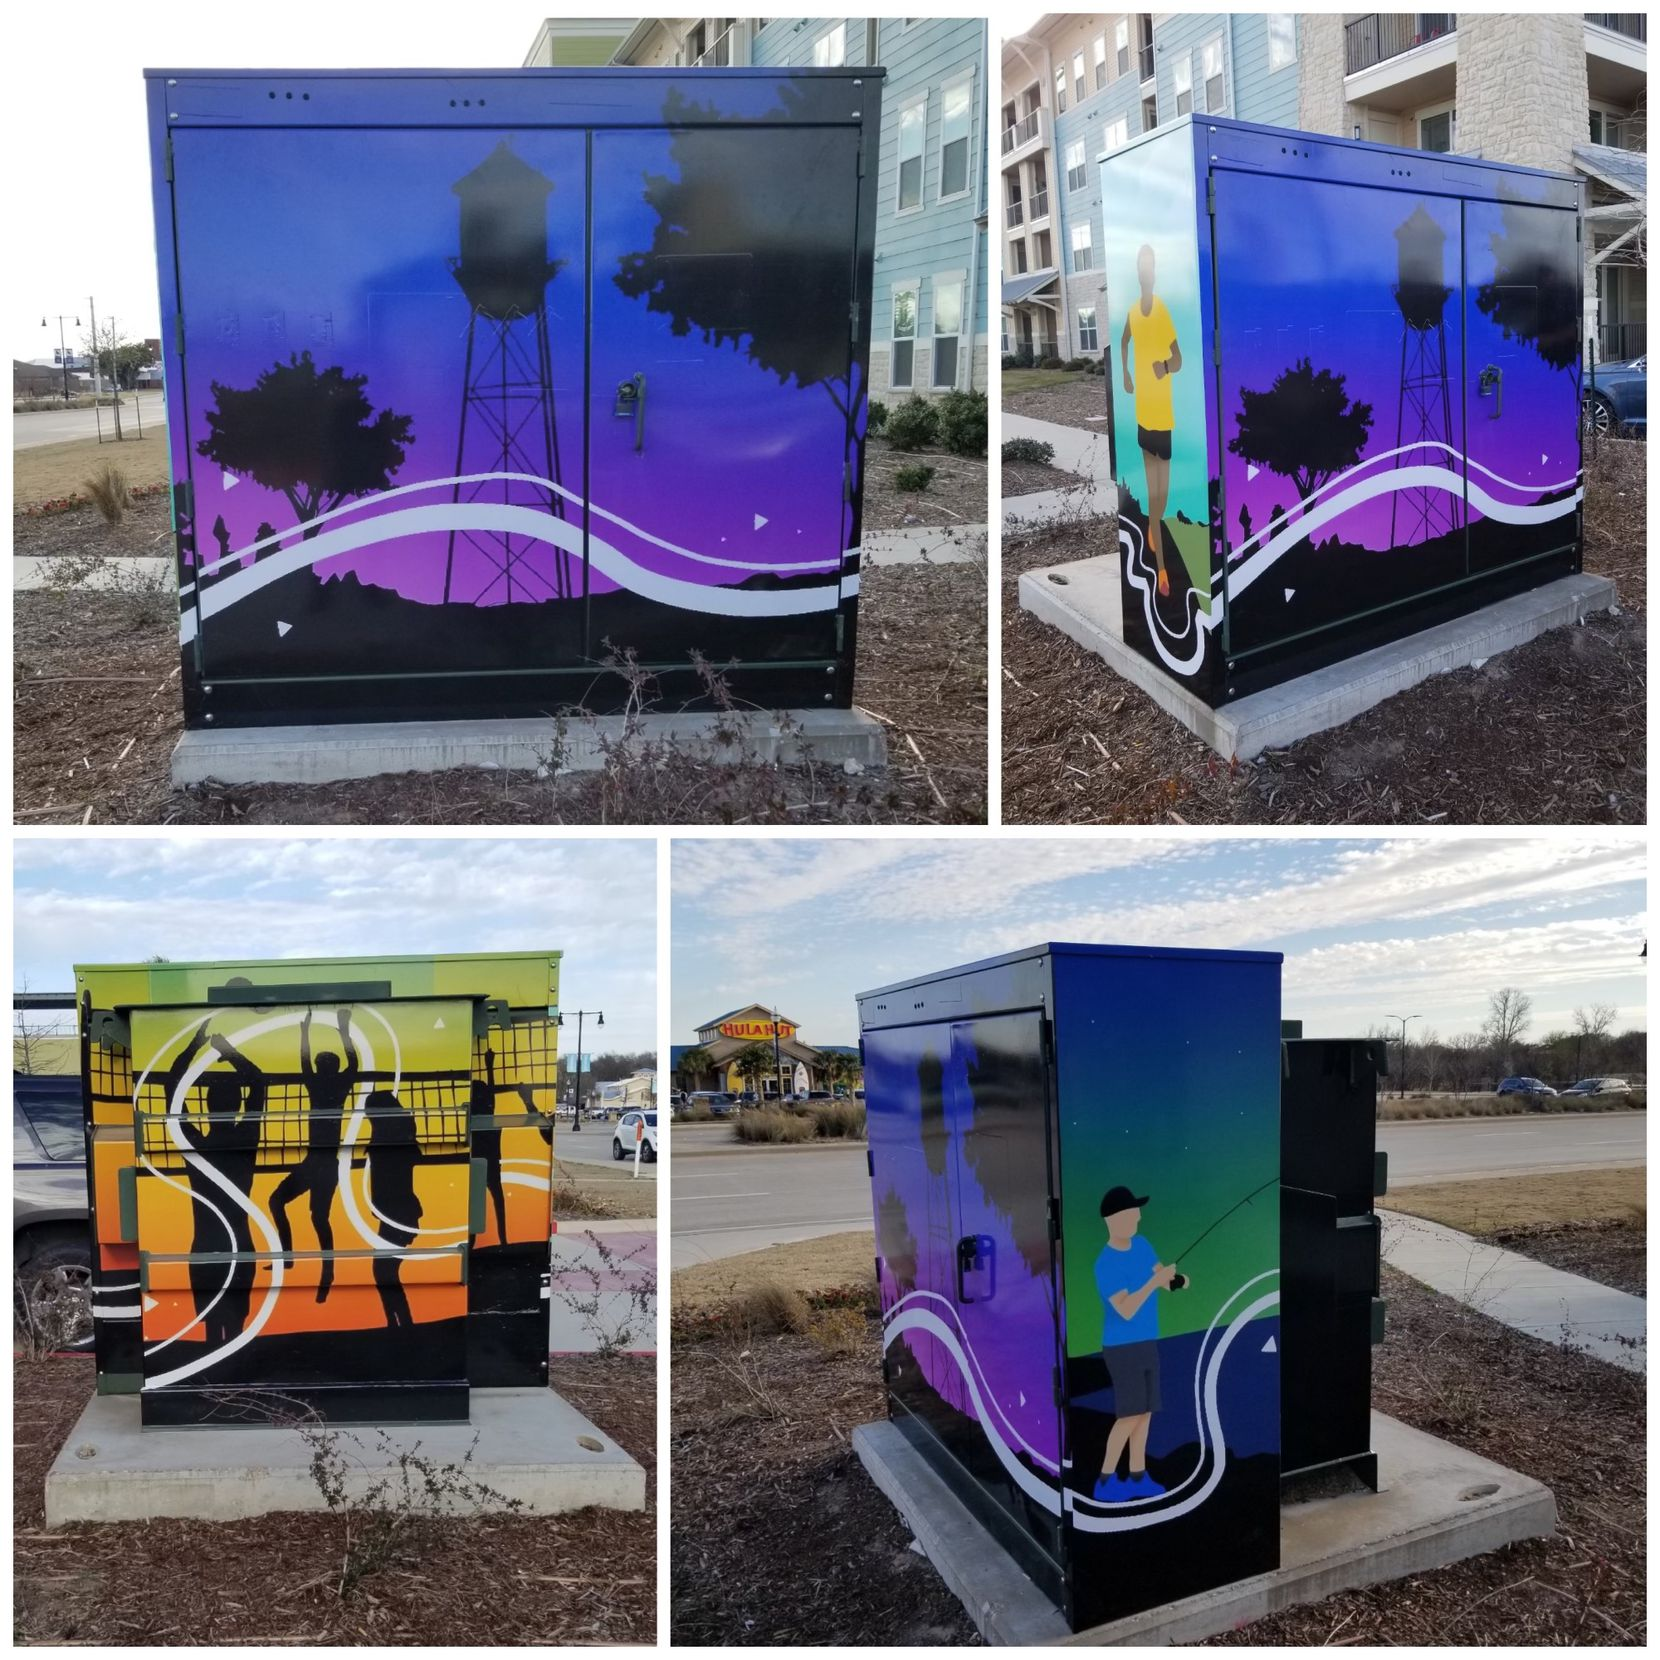 The town of Little Elm partnered with the local Signarama to wrap public utility boxes in an attempt to color the town.